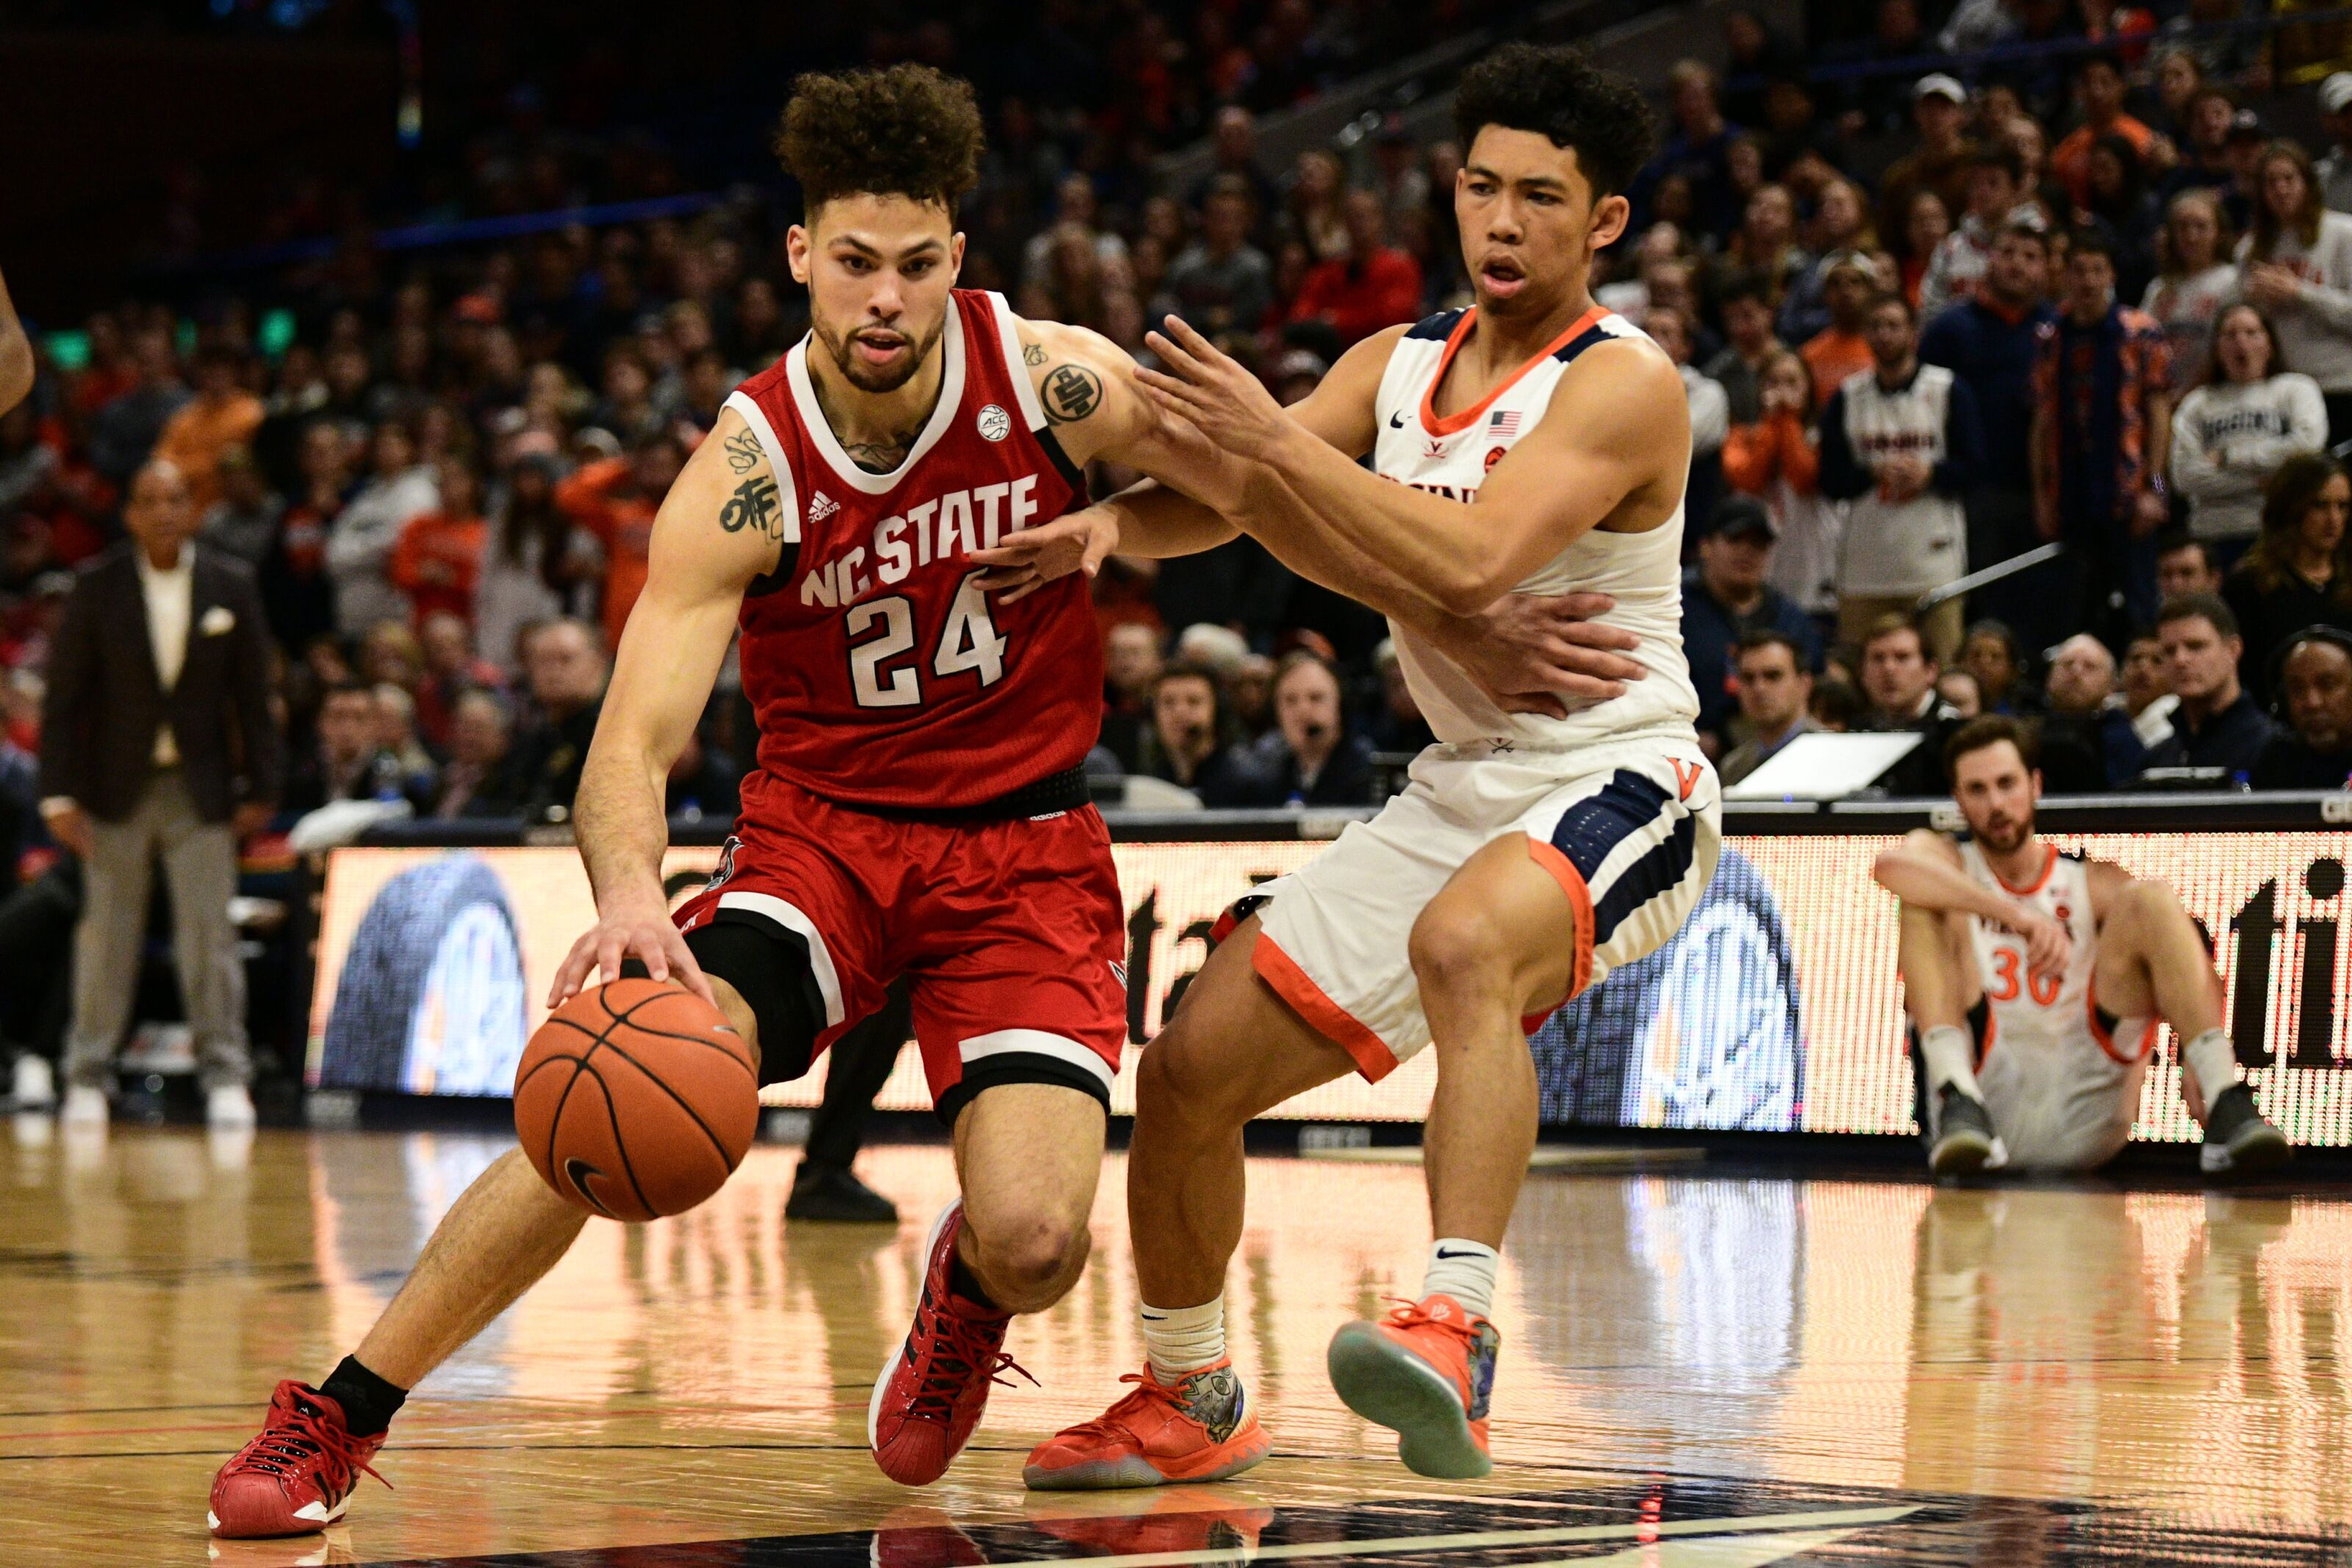 Bracketology: Will ACC get more than 3 teams in NCAA Tournament?